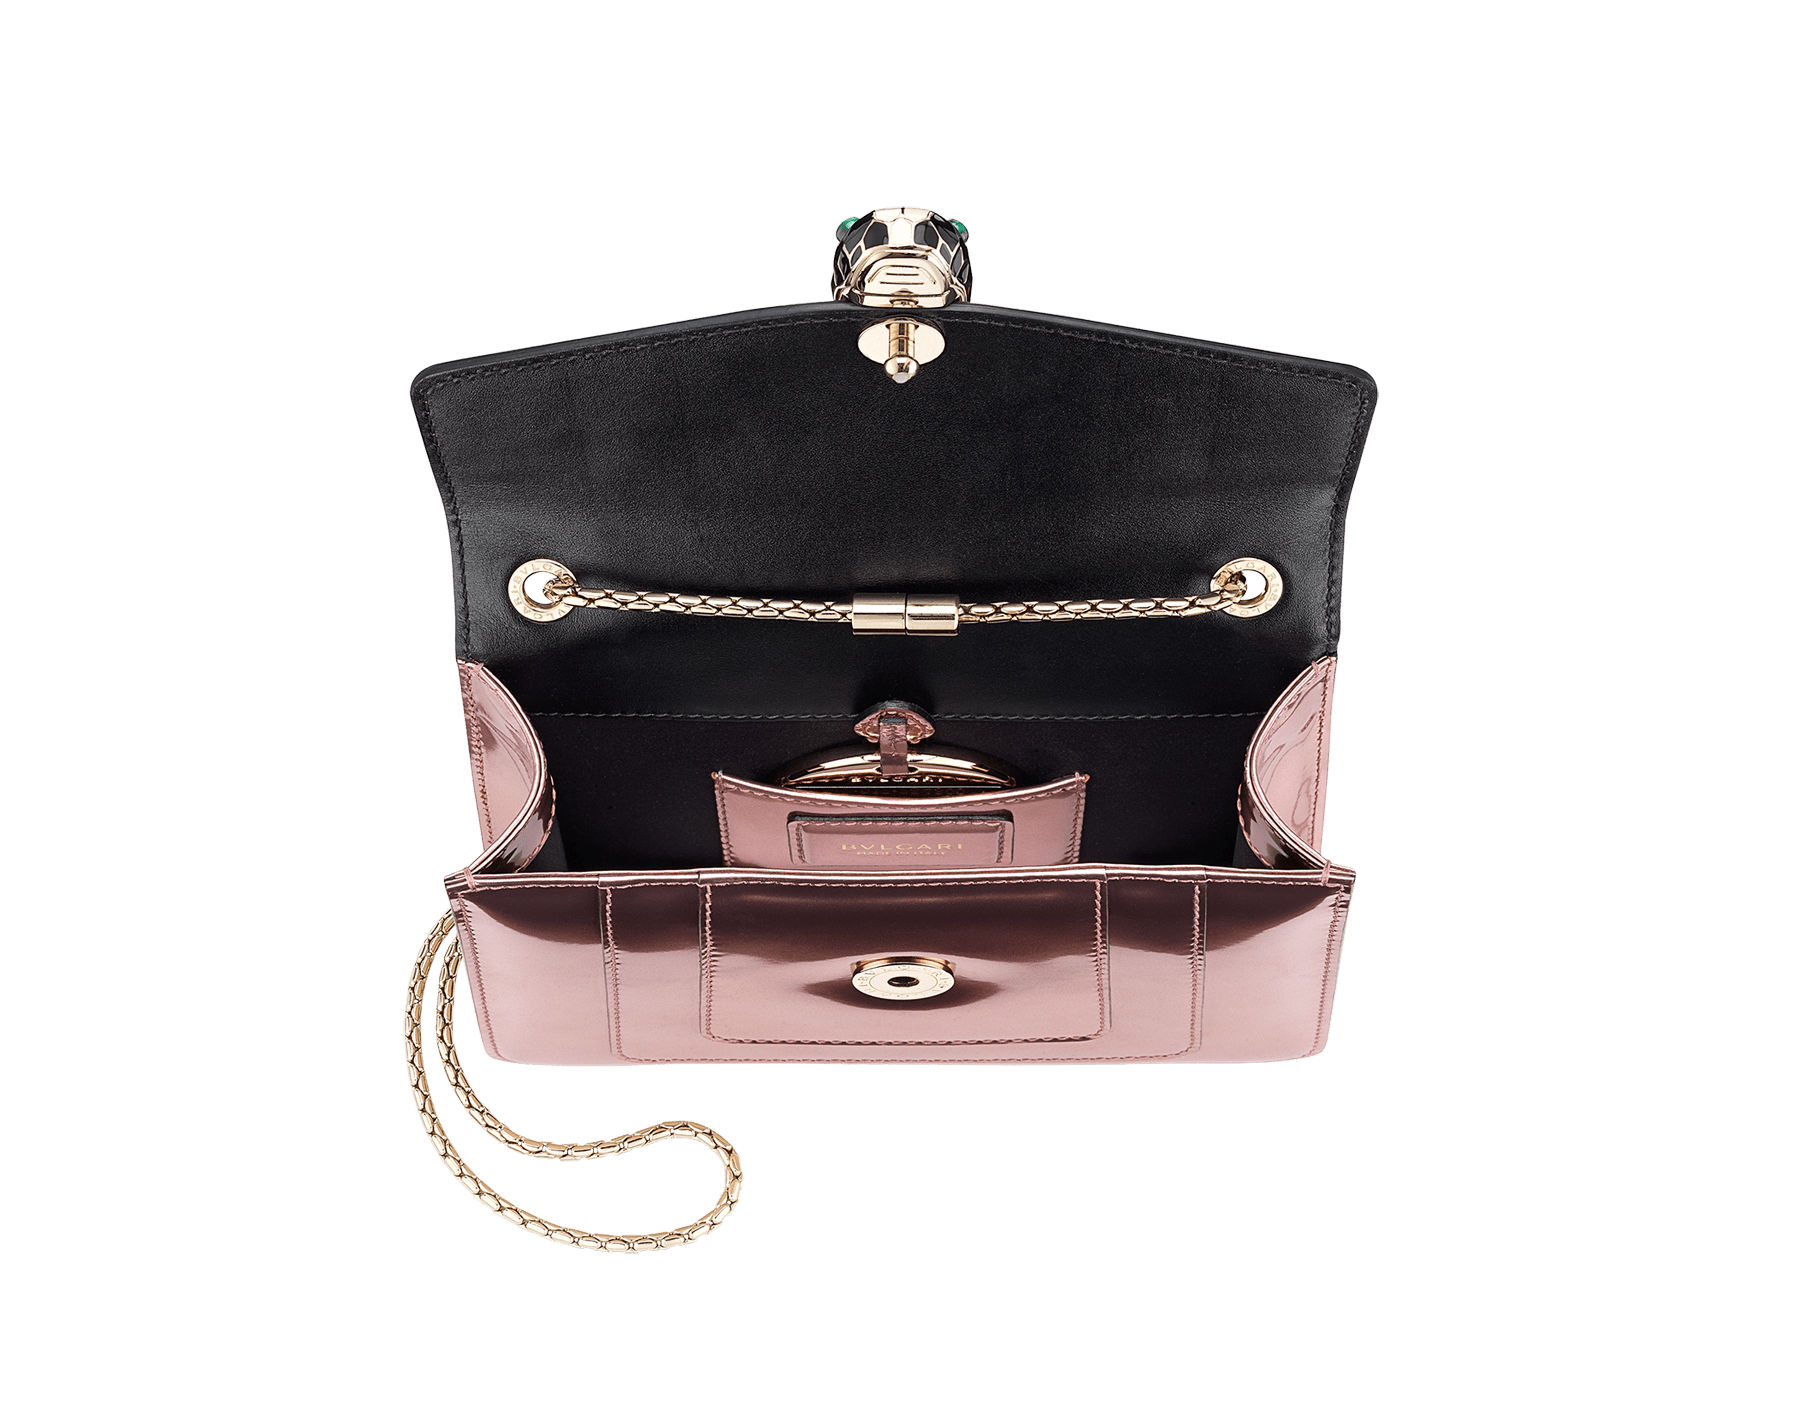 Flap cover bag Serpenti Forever in rose quartz brushed metallic calf leather. Brass light gold plated tempting snake head closure in black and white enamel, with eyes in green malachite. 284800 image 5